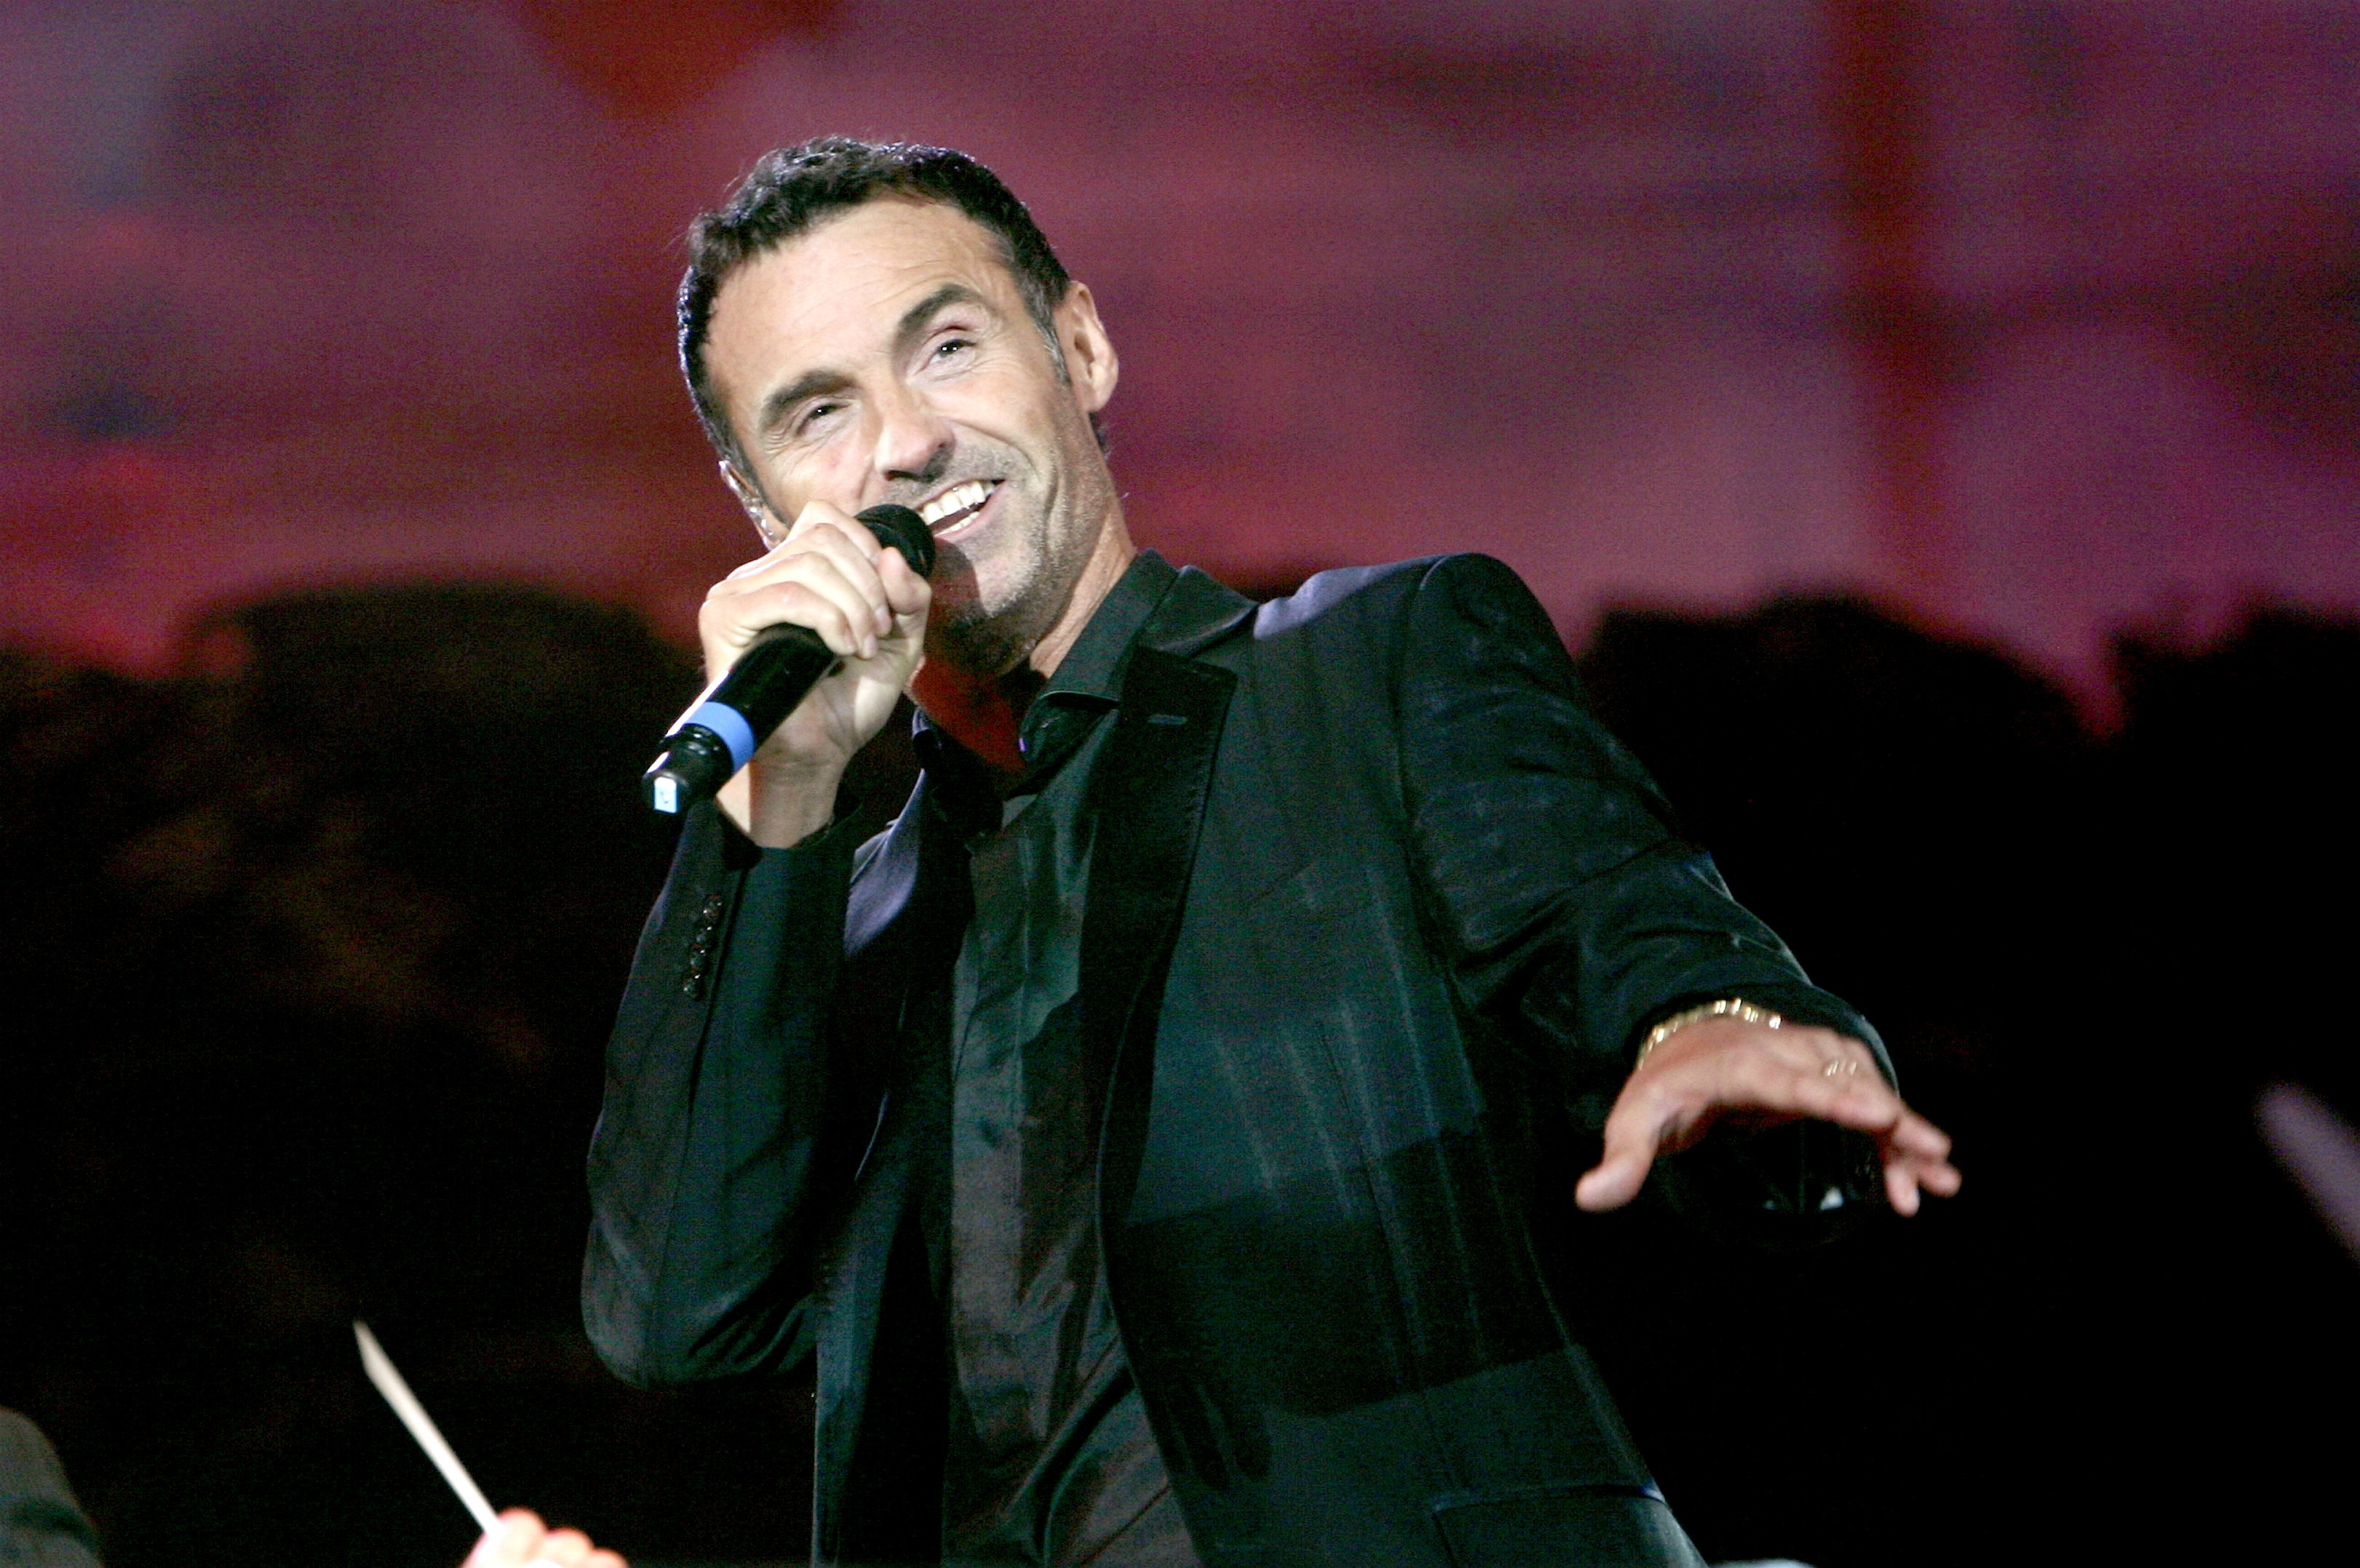 Marti Pellow on stage during BBC Radio 2's 'Thank You For The Music, A Celebration of the Music of ABBA' show